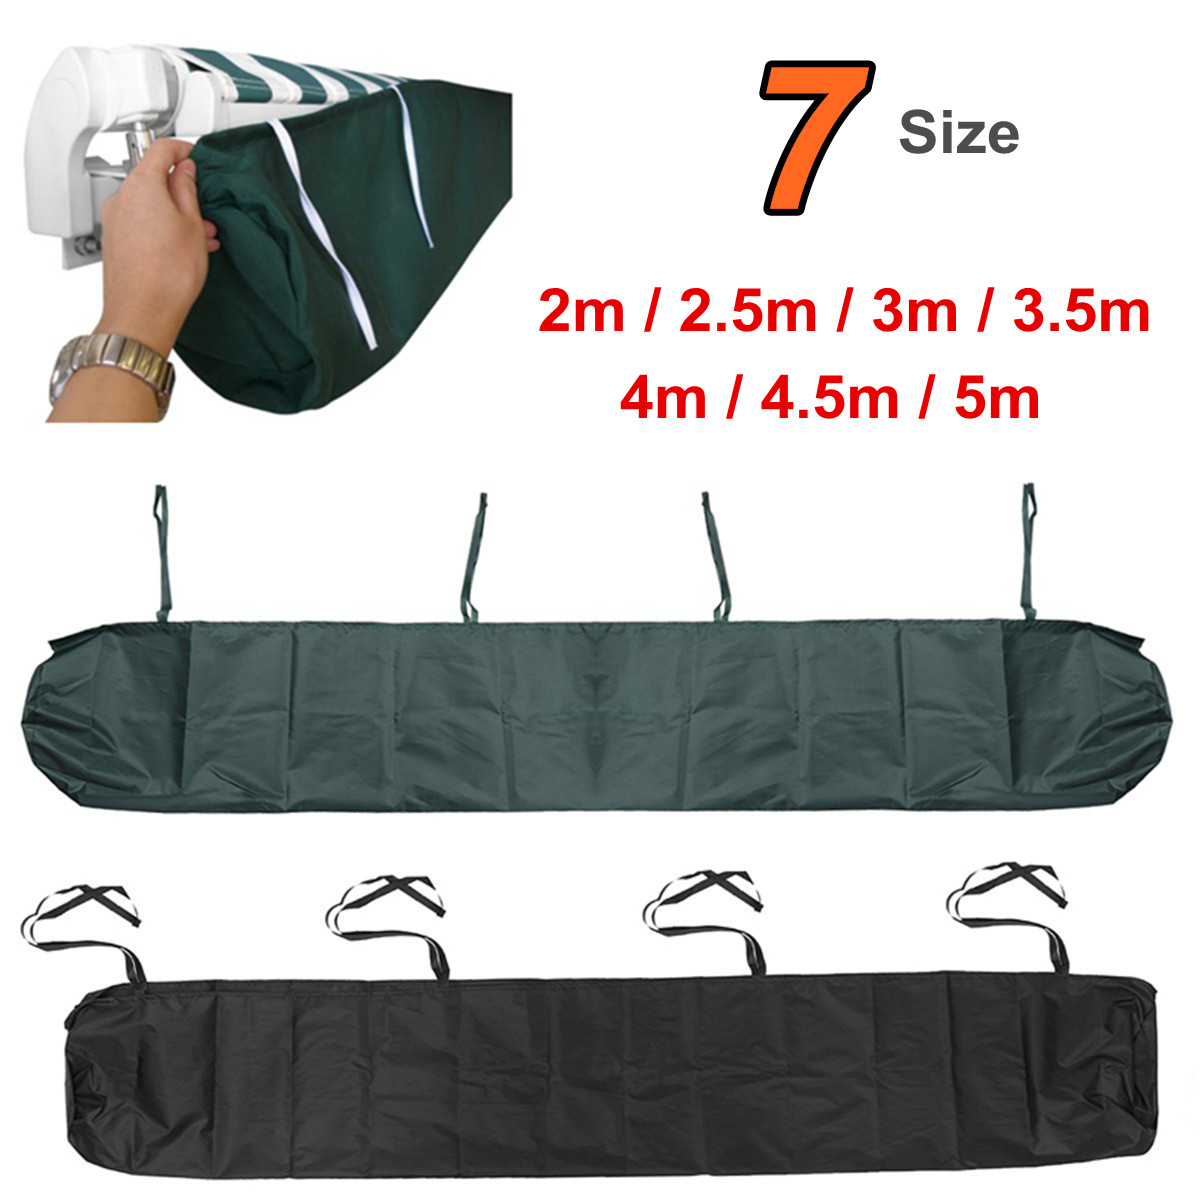 Details About 2m 5m Awning Weather Rain Cover Patio Awnings Sun Canopy Storage Bag